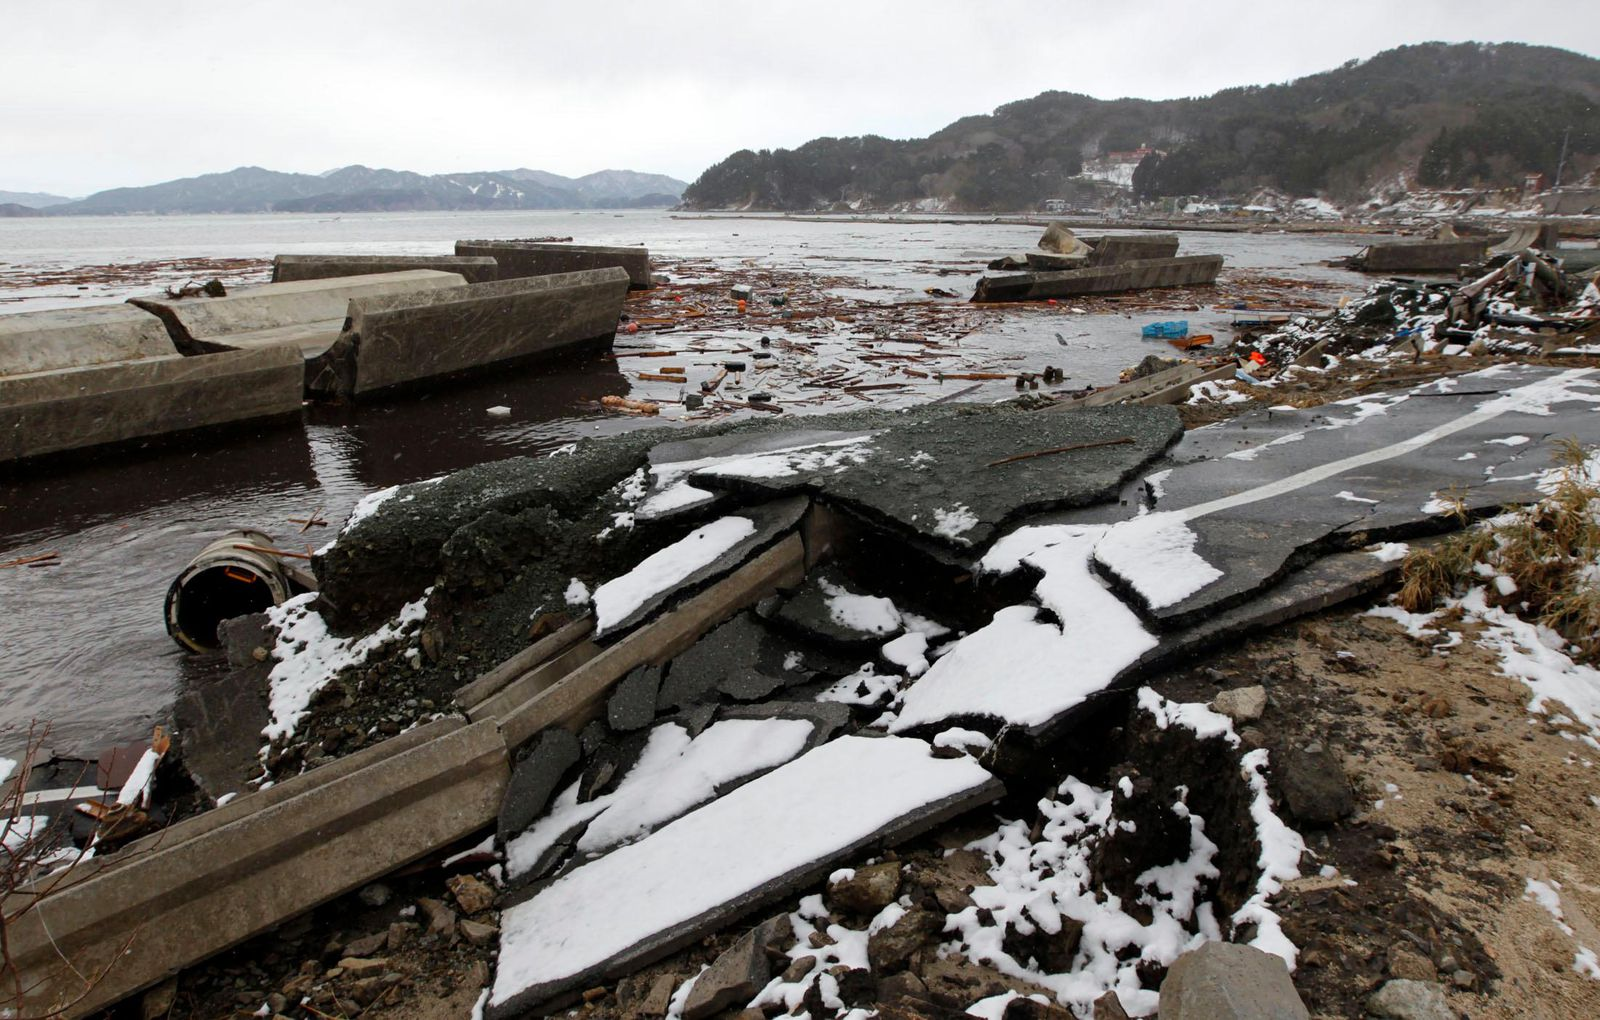 Japan Is Building A 40 Foot Wall To Stop Tsunamis Smart News Smithsonian Magazine